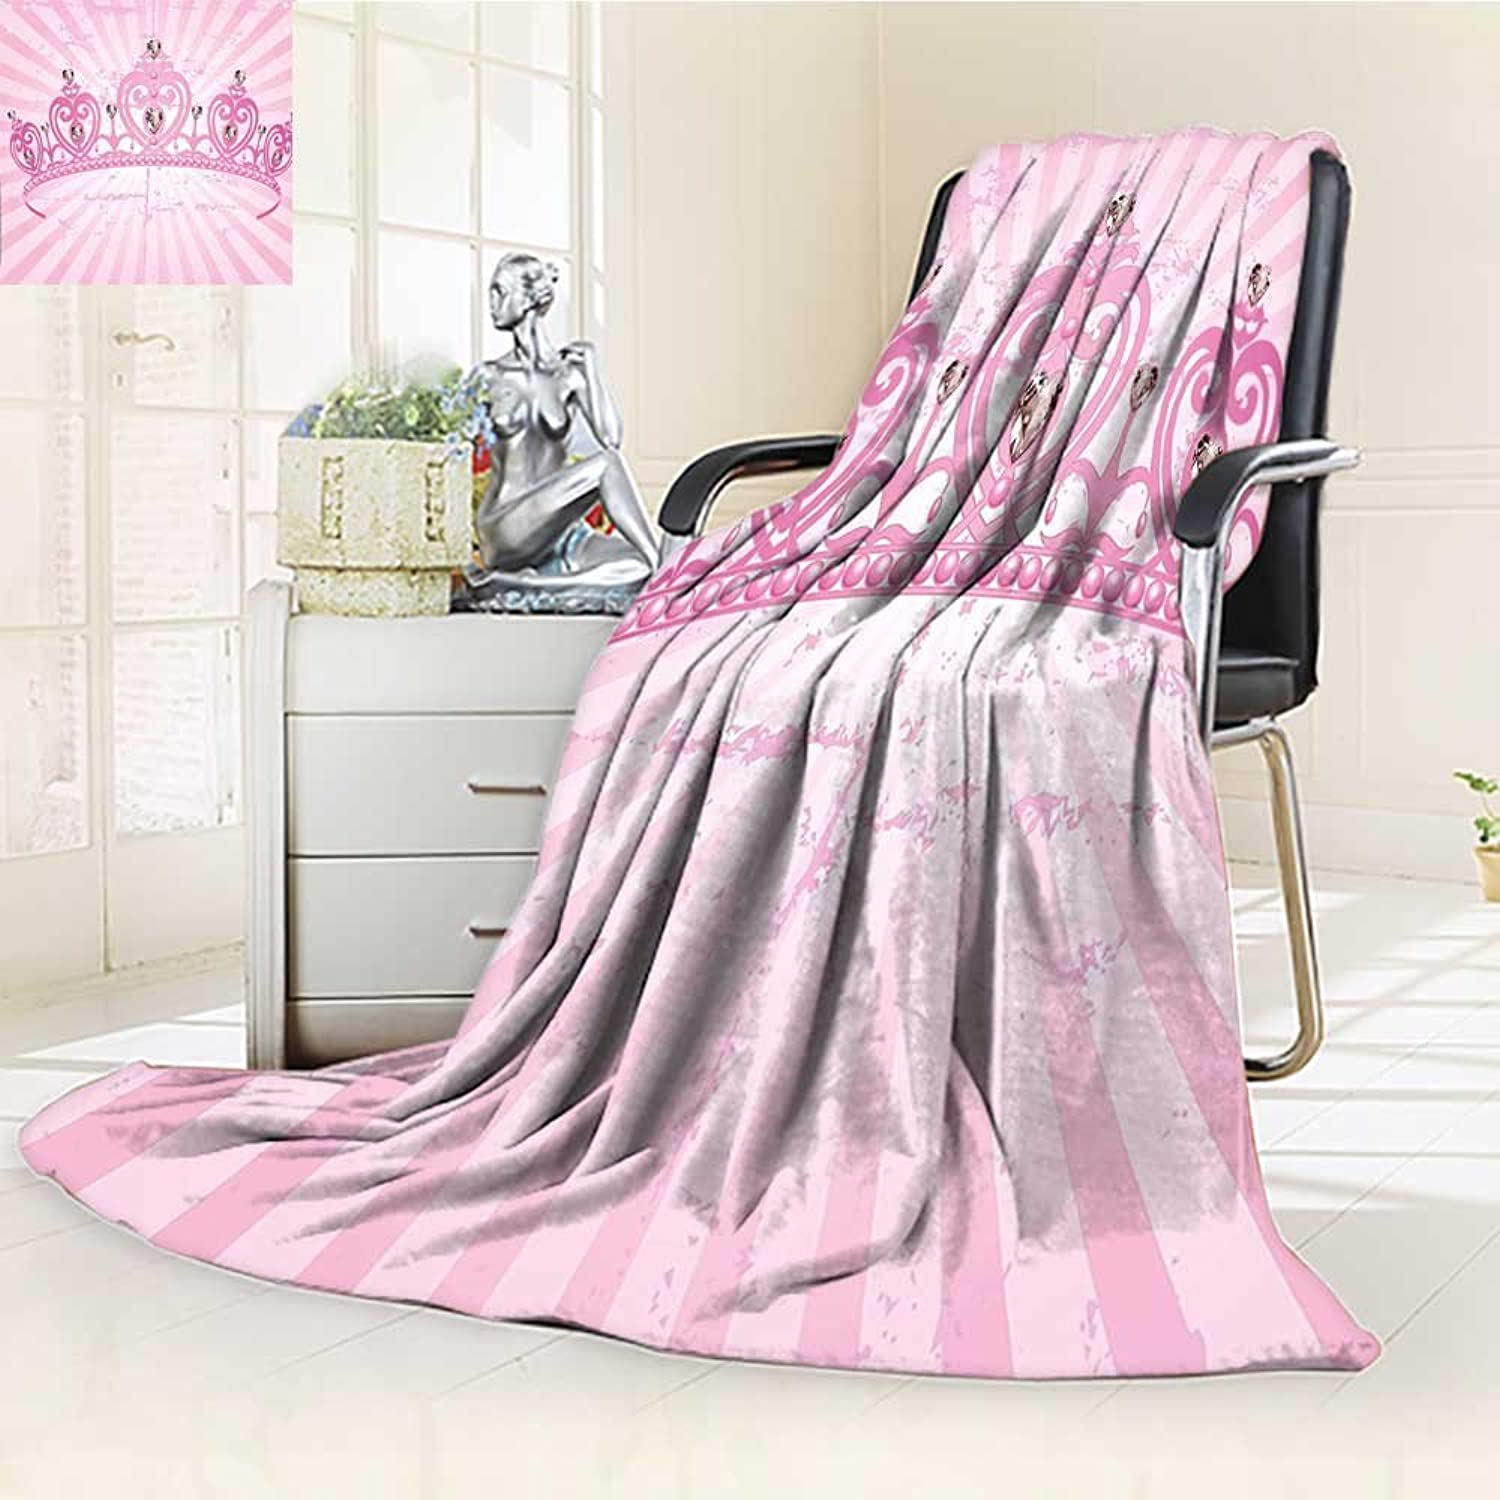 YOYIHOME Duplex Printed Blanket Warm Microfiber Pink Heart Shaped Princess Crown on Radial Backdrop Girls Room Pink Light Pink for Bed or Couch W47 x H59